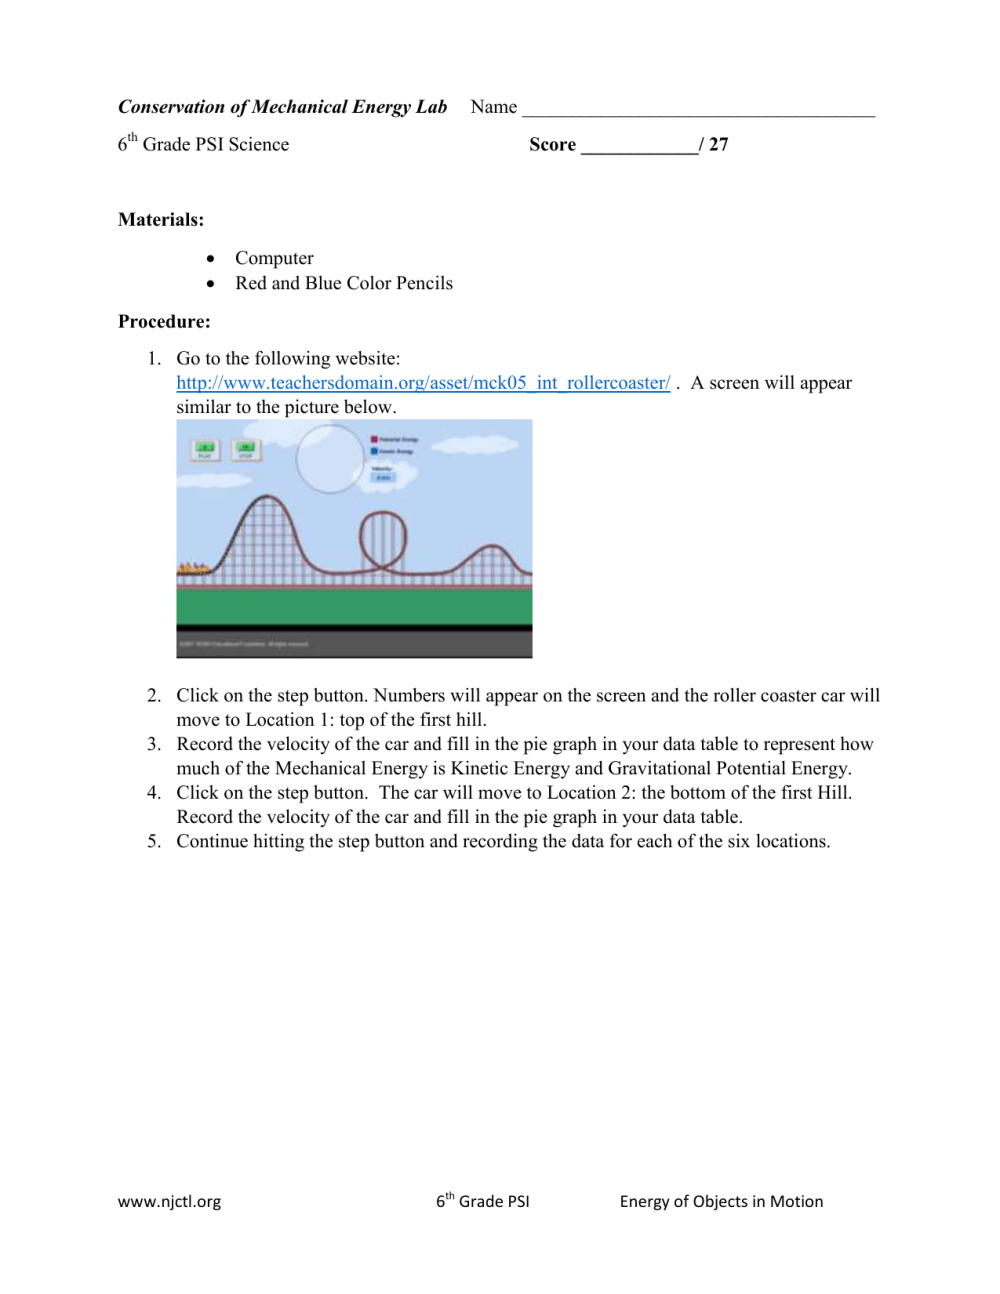 medium resolution of Conservation of Mechanical Energy Lab Name 6 Grade PSI Science